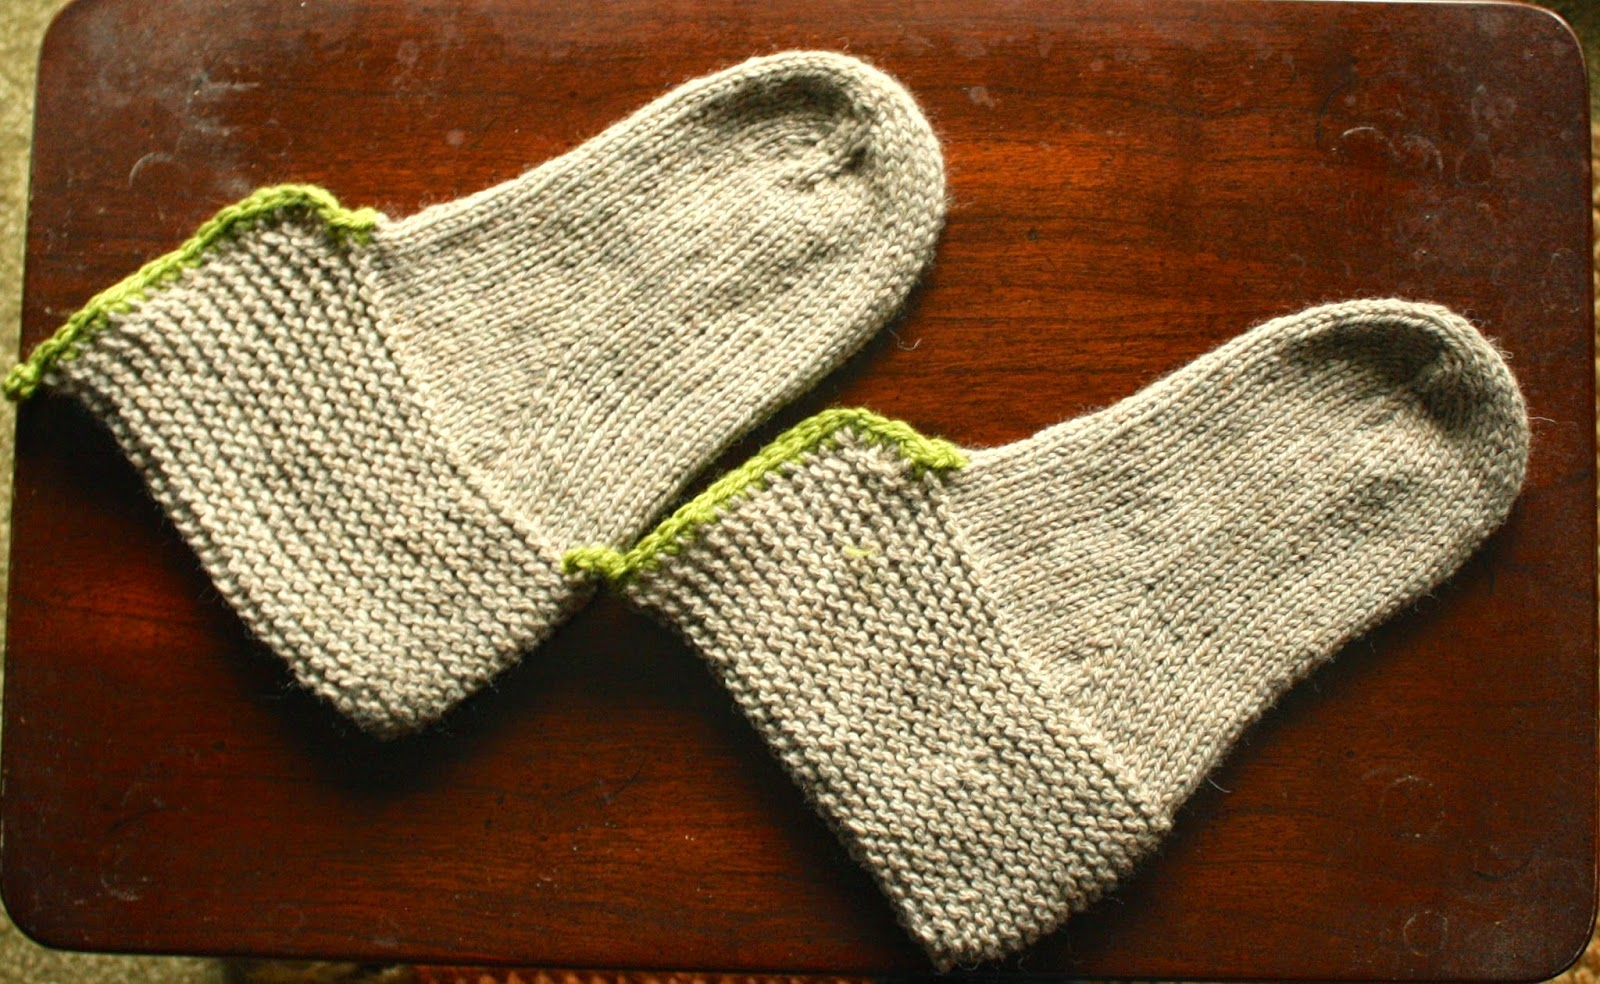 Knit Cable Stitch Pinterest : QueerJoes Knitting Blog: Pinterest Inspires Again